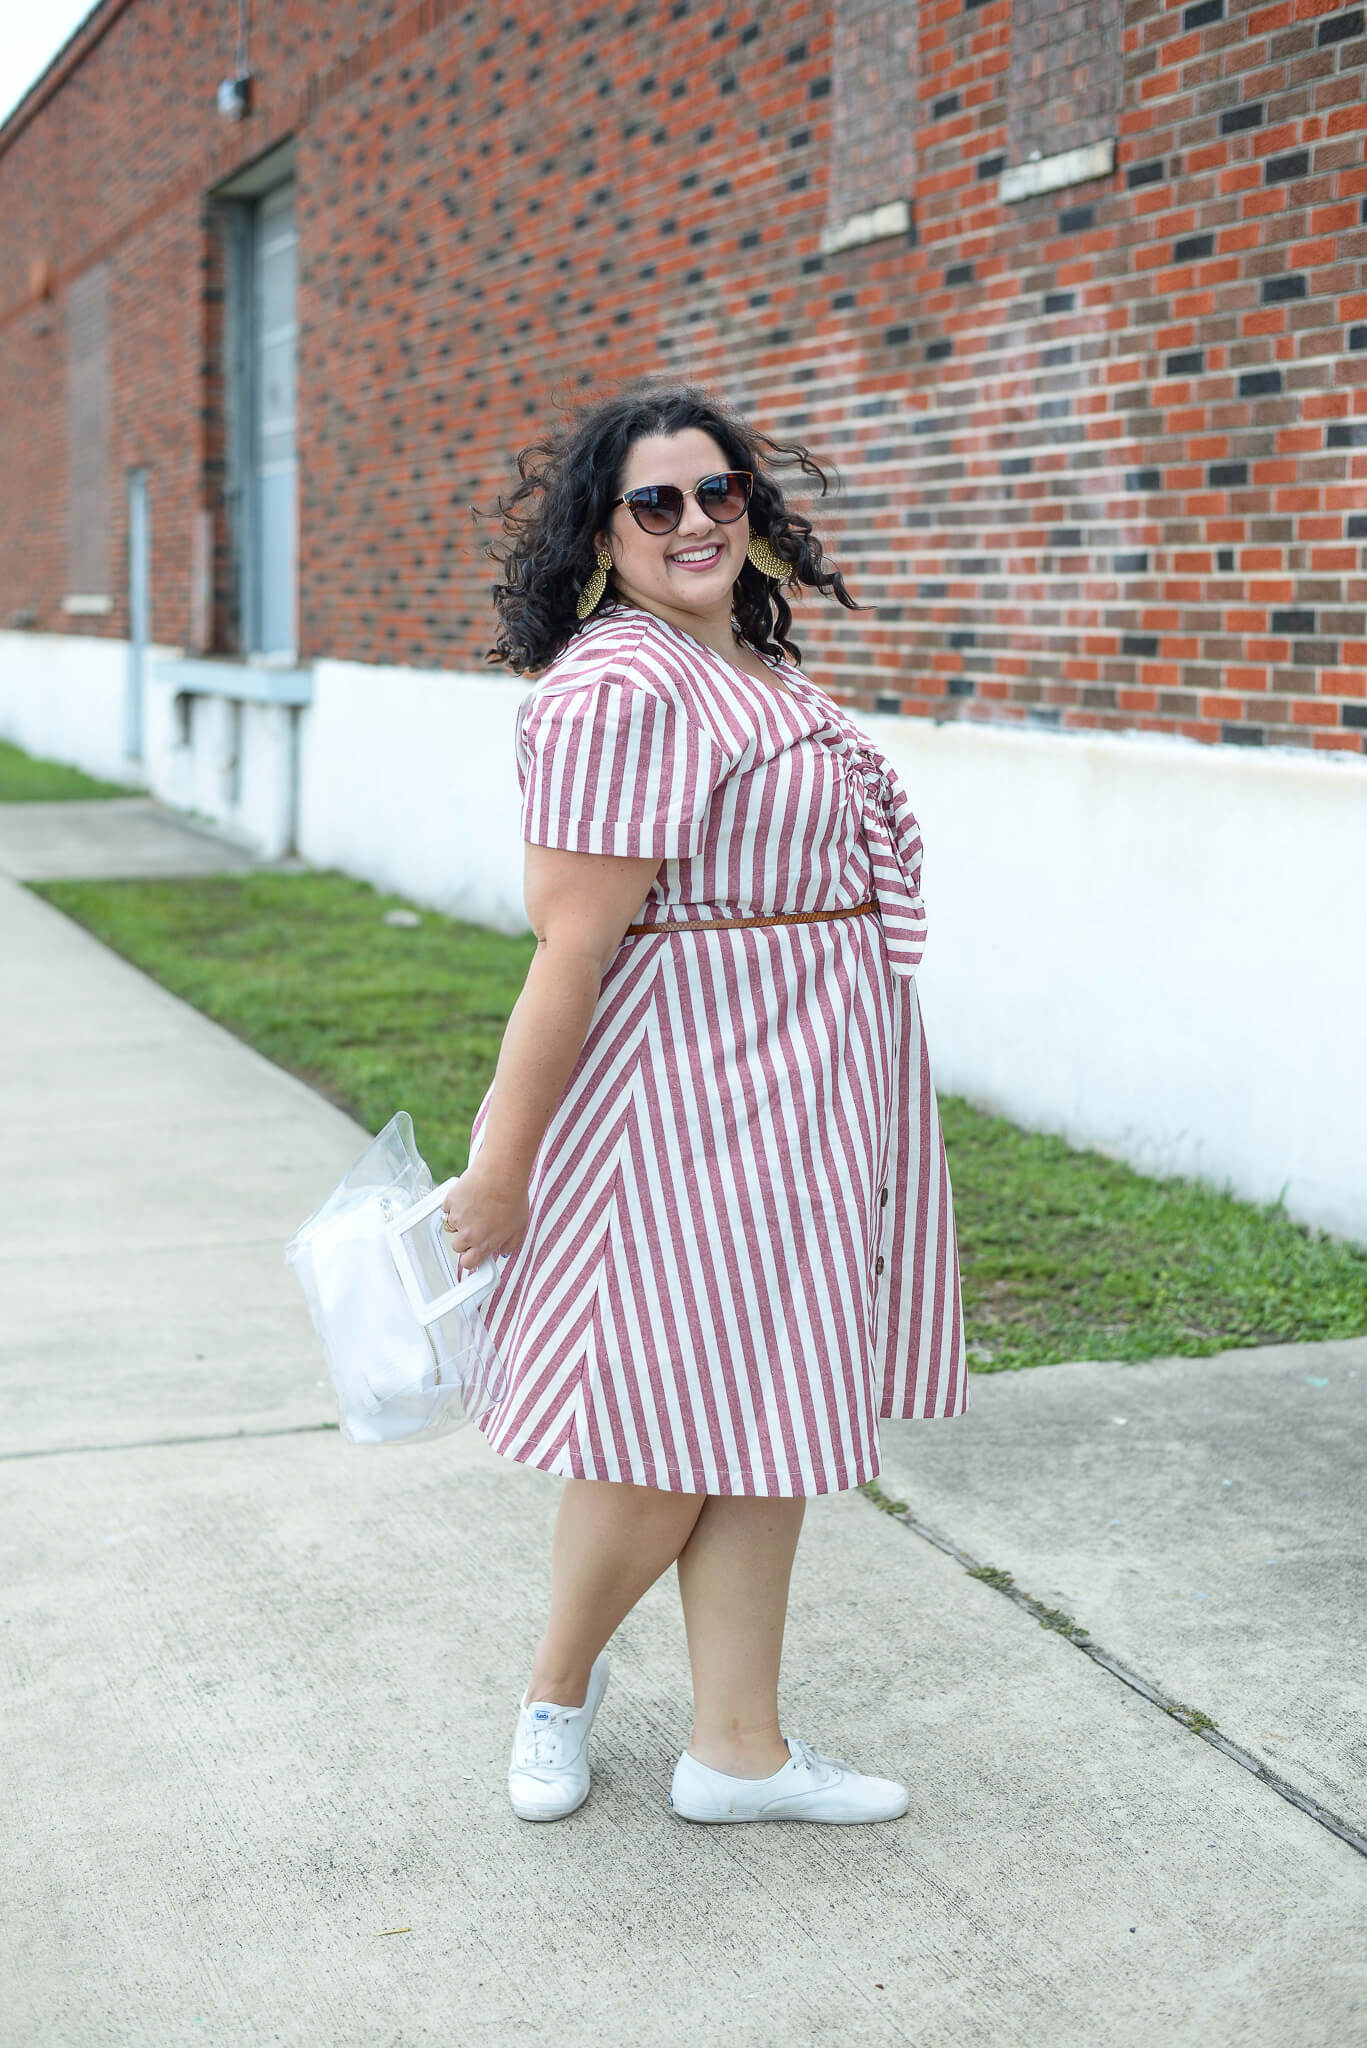 Summer has officially hit Texas and battling the 100+ degree temps can be difficult. Luckily, this striped linen dress from Eloquii helps me to look and feel cool without a lot of effort.